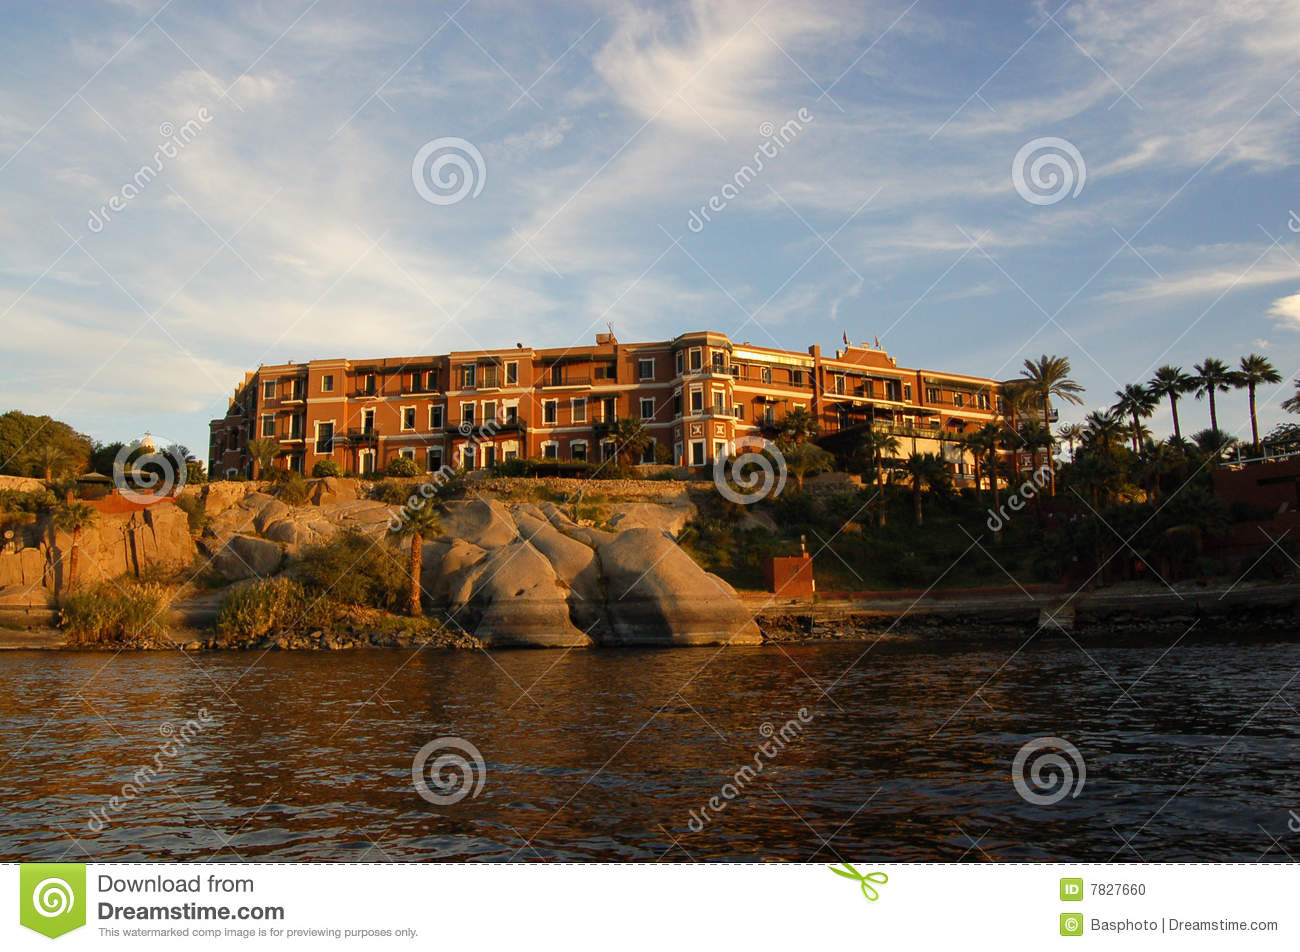 Old Cataract Hotel Aswan Stock Photo Image Of Evening 7827660